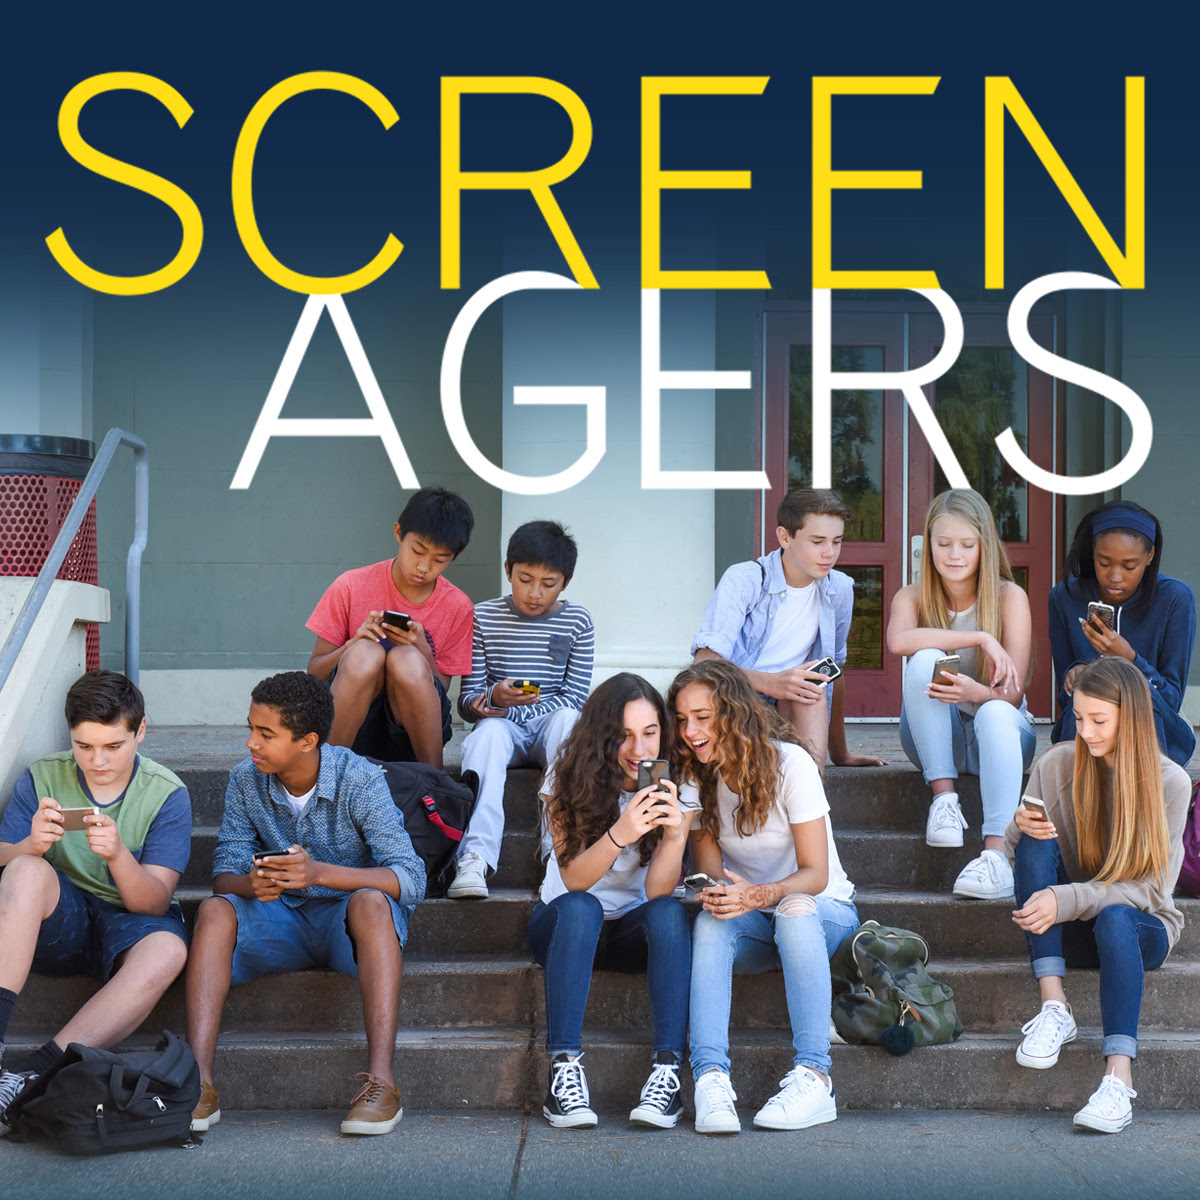 Screenagers Film Presented By Calvary Church